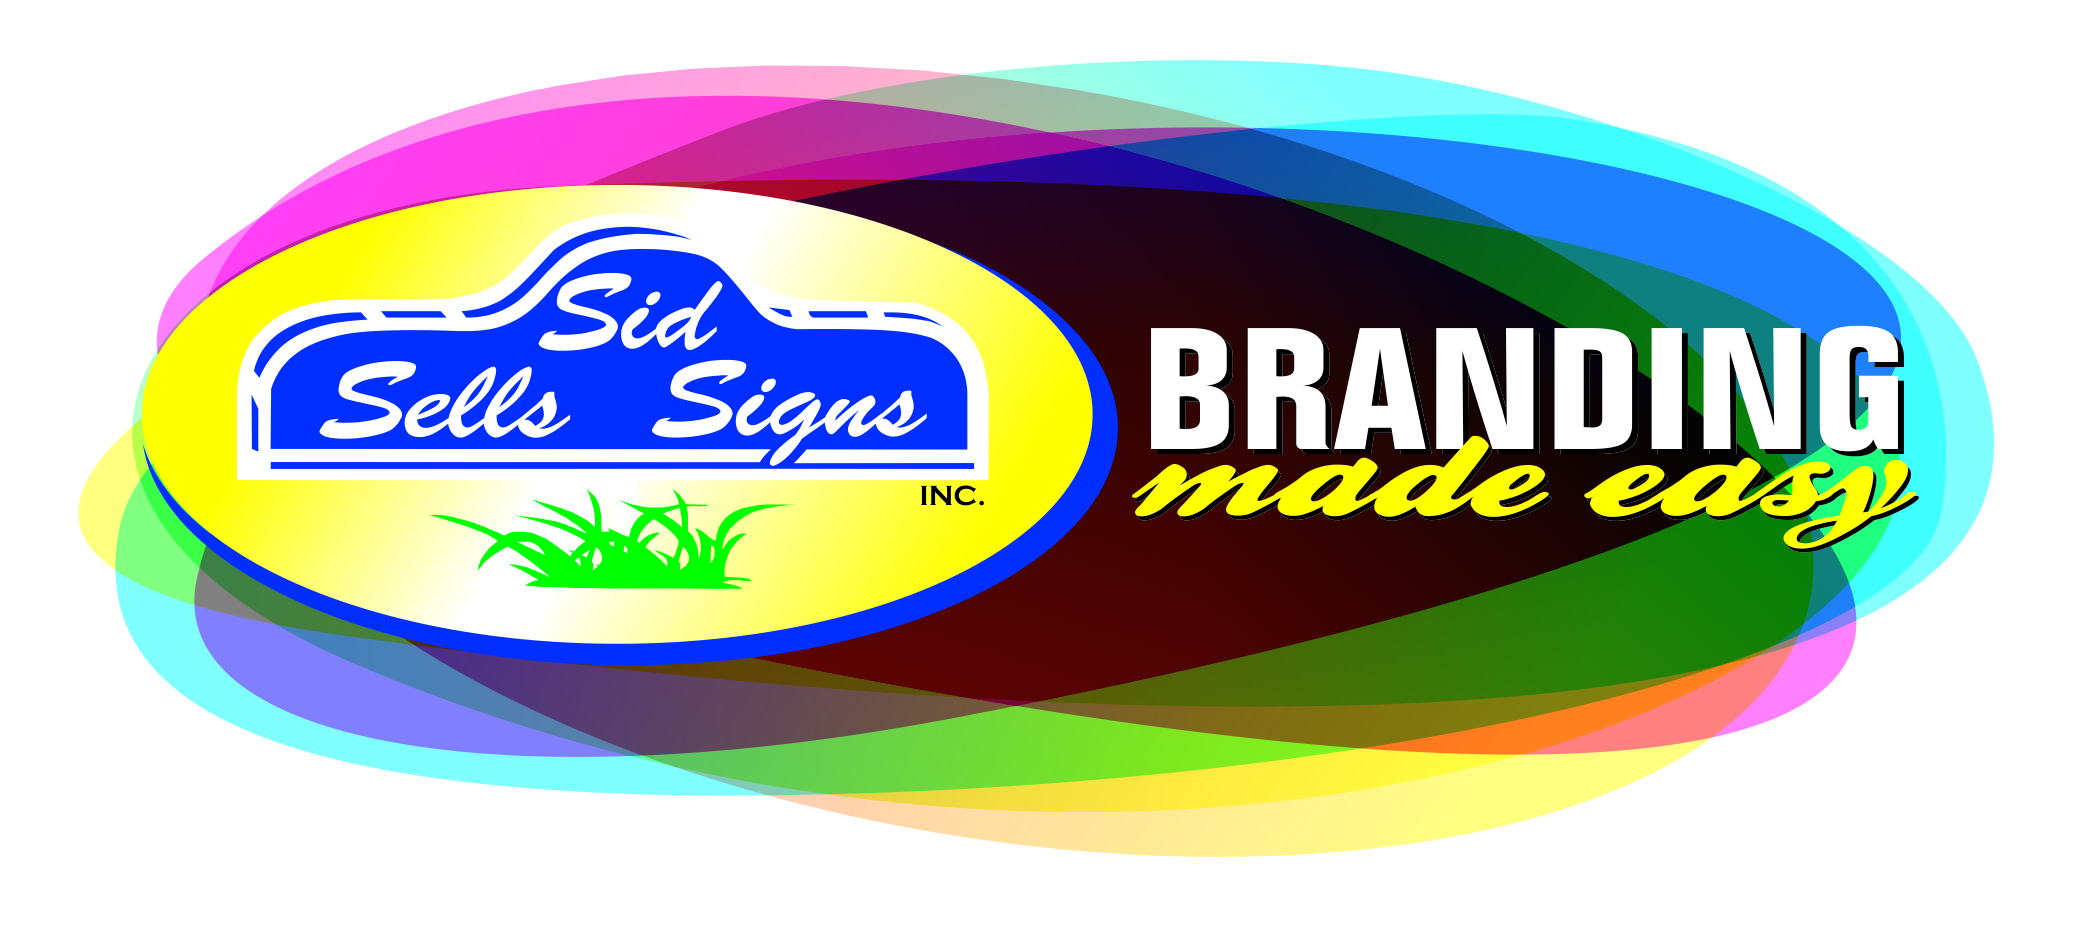 Sid Sells Signs inc -- A Nova Scotia Sign Company